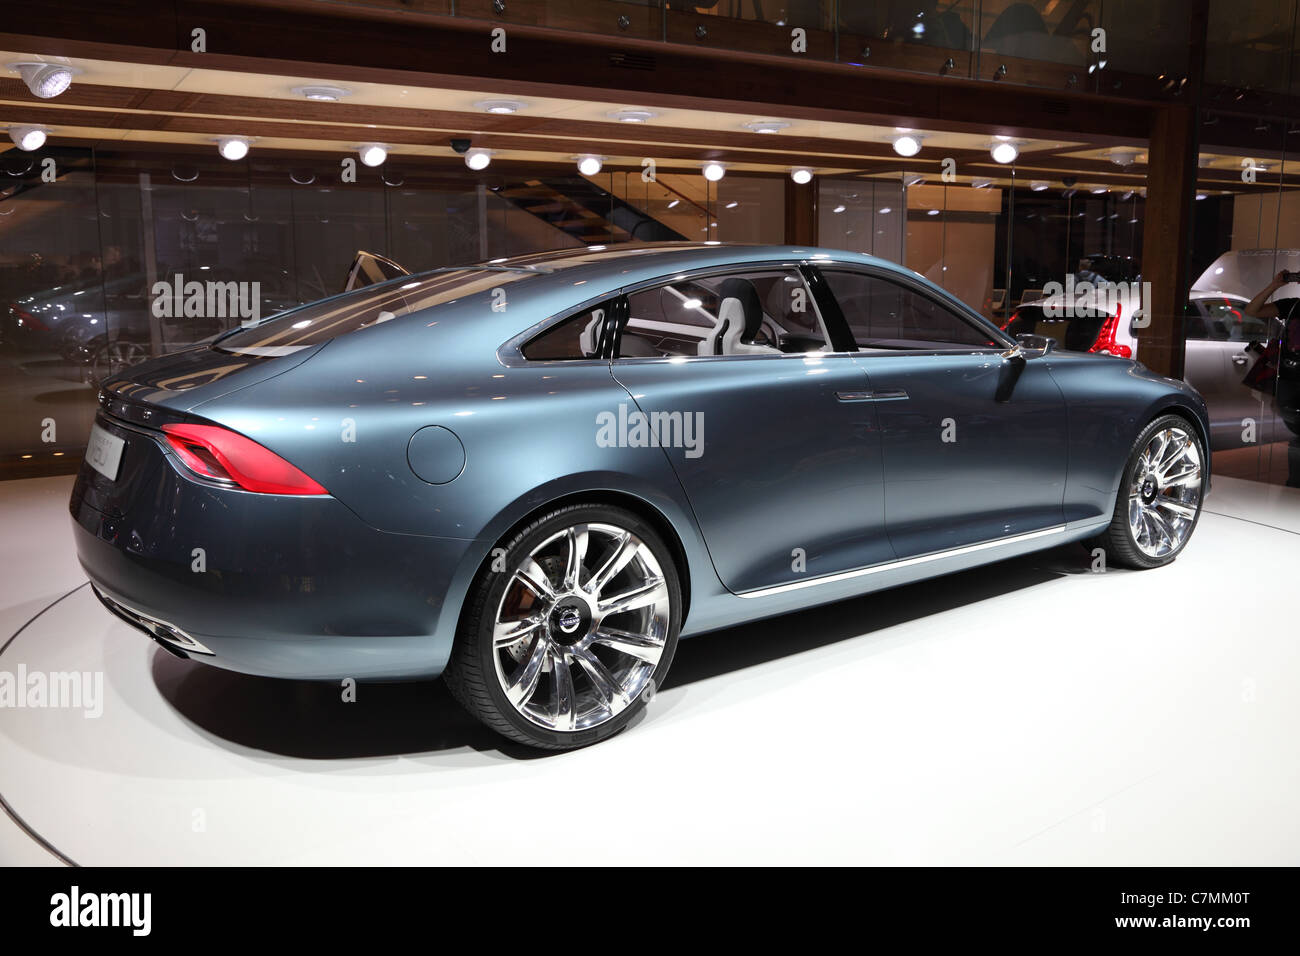 Volvo Concept Car You at the 64th IAA (Internationale Automobil Ausstellung) on September 24, 2011 in Frankfurt - Stock Image